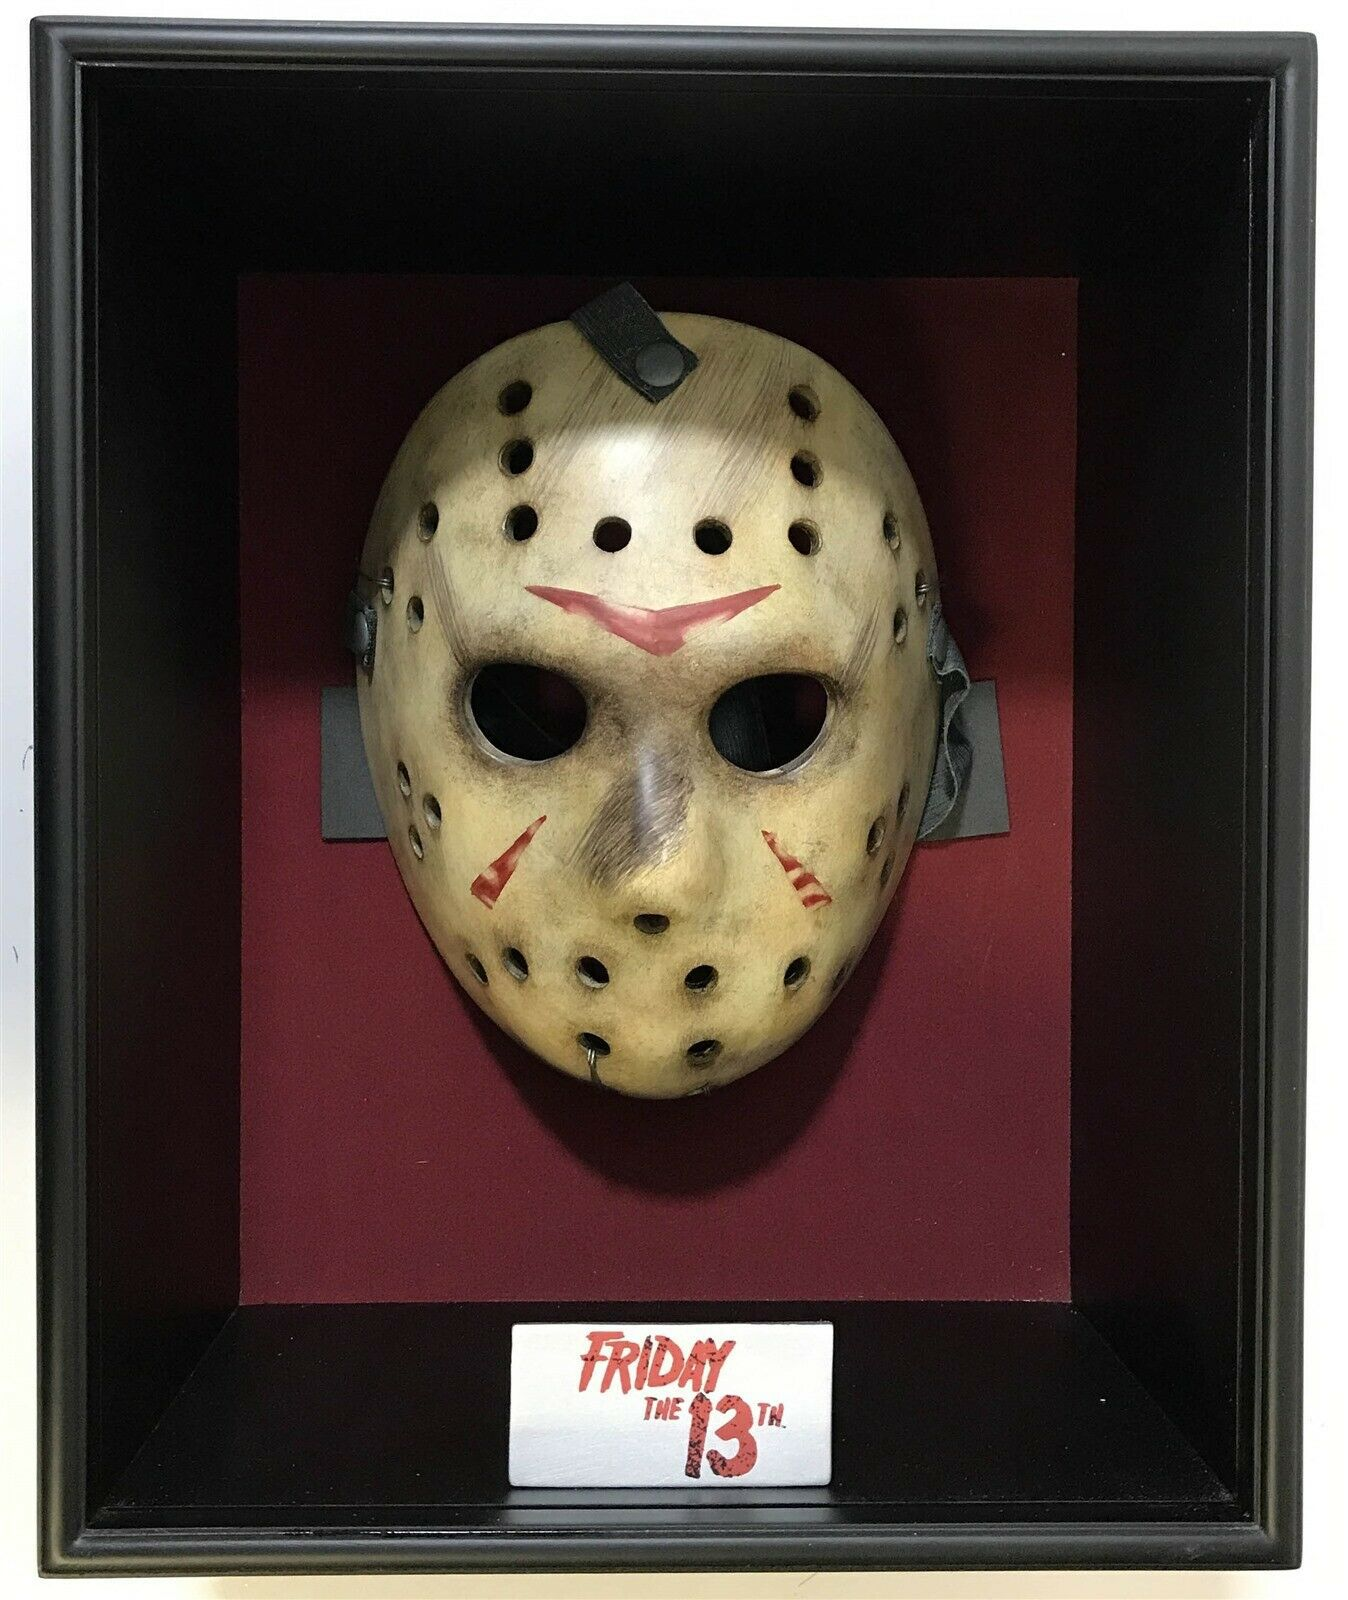 Réplica Máscara Jason Voorhees (Prop Replica): Sexta-Feira 13 (Friday the 13th) - Neca - CG